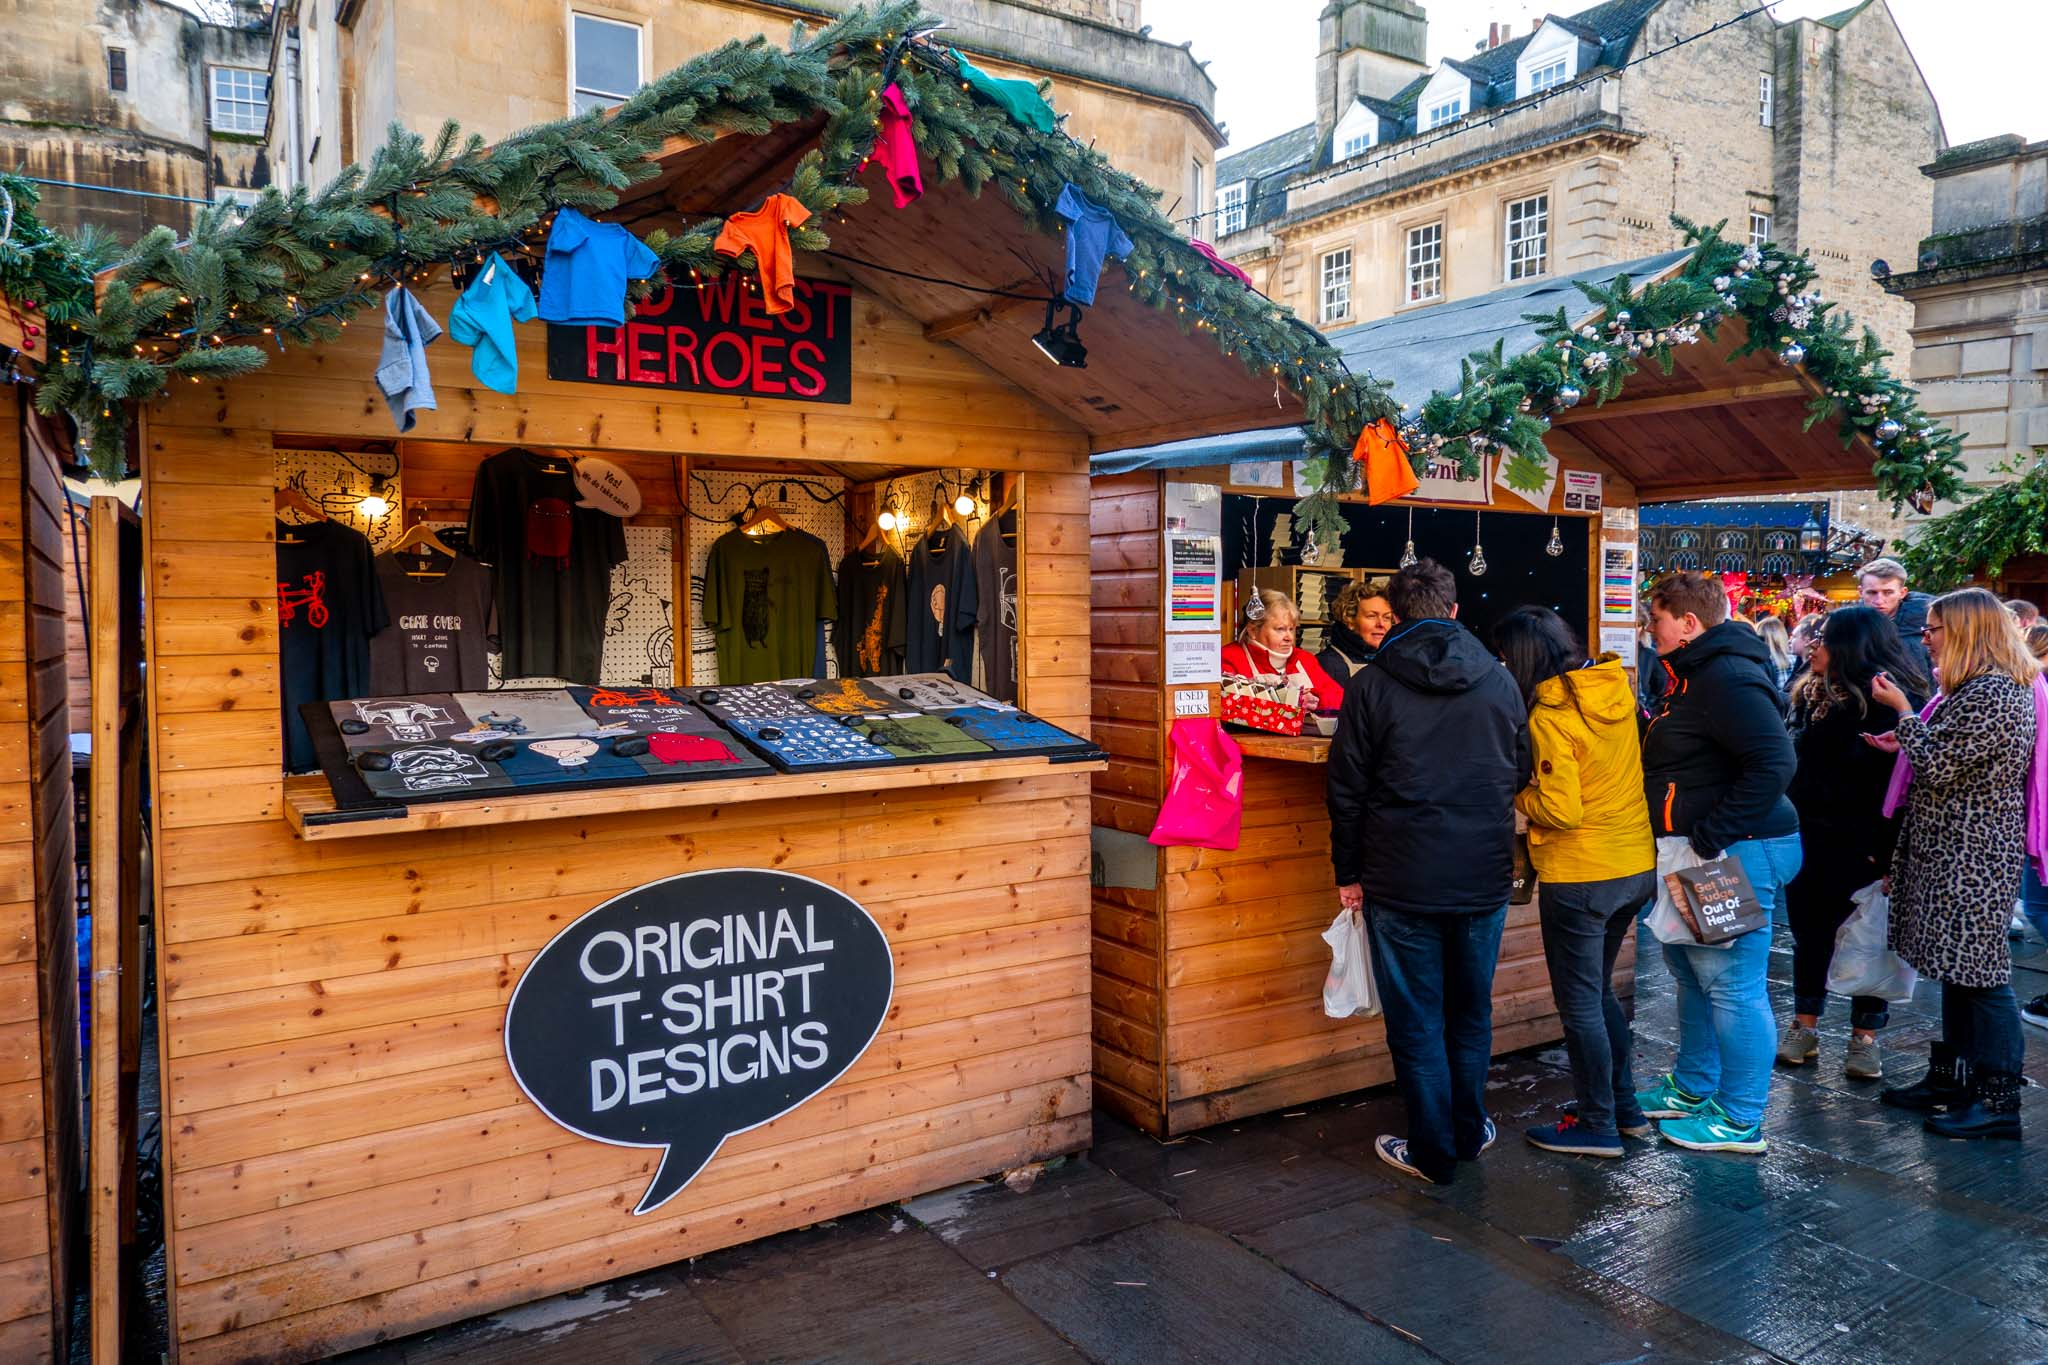 People shopping and eating at wooden chalets at the Christmas market in Bath England